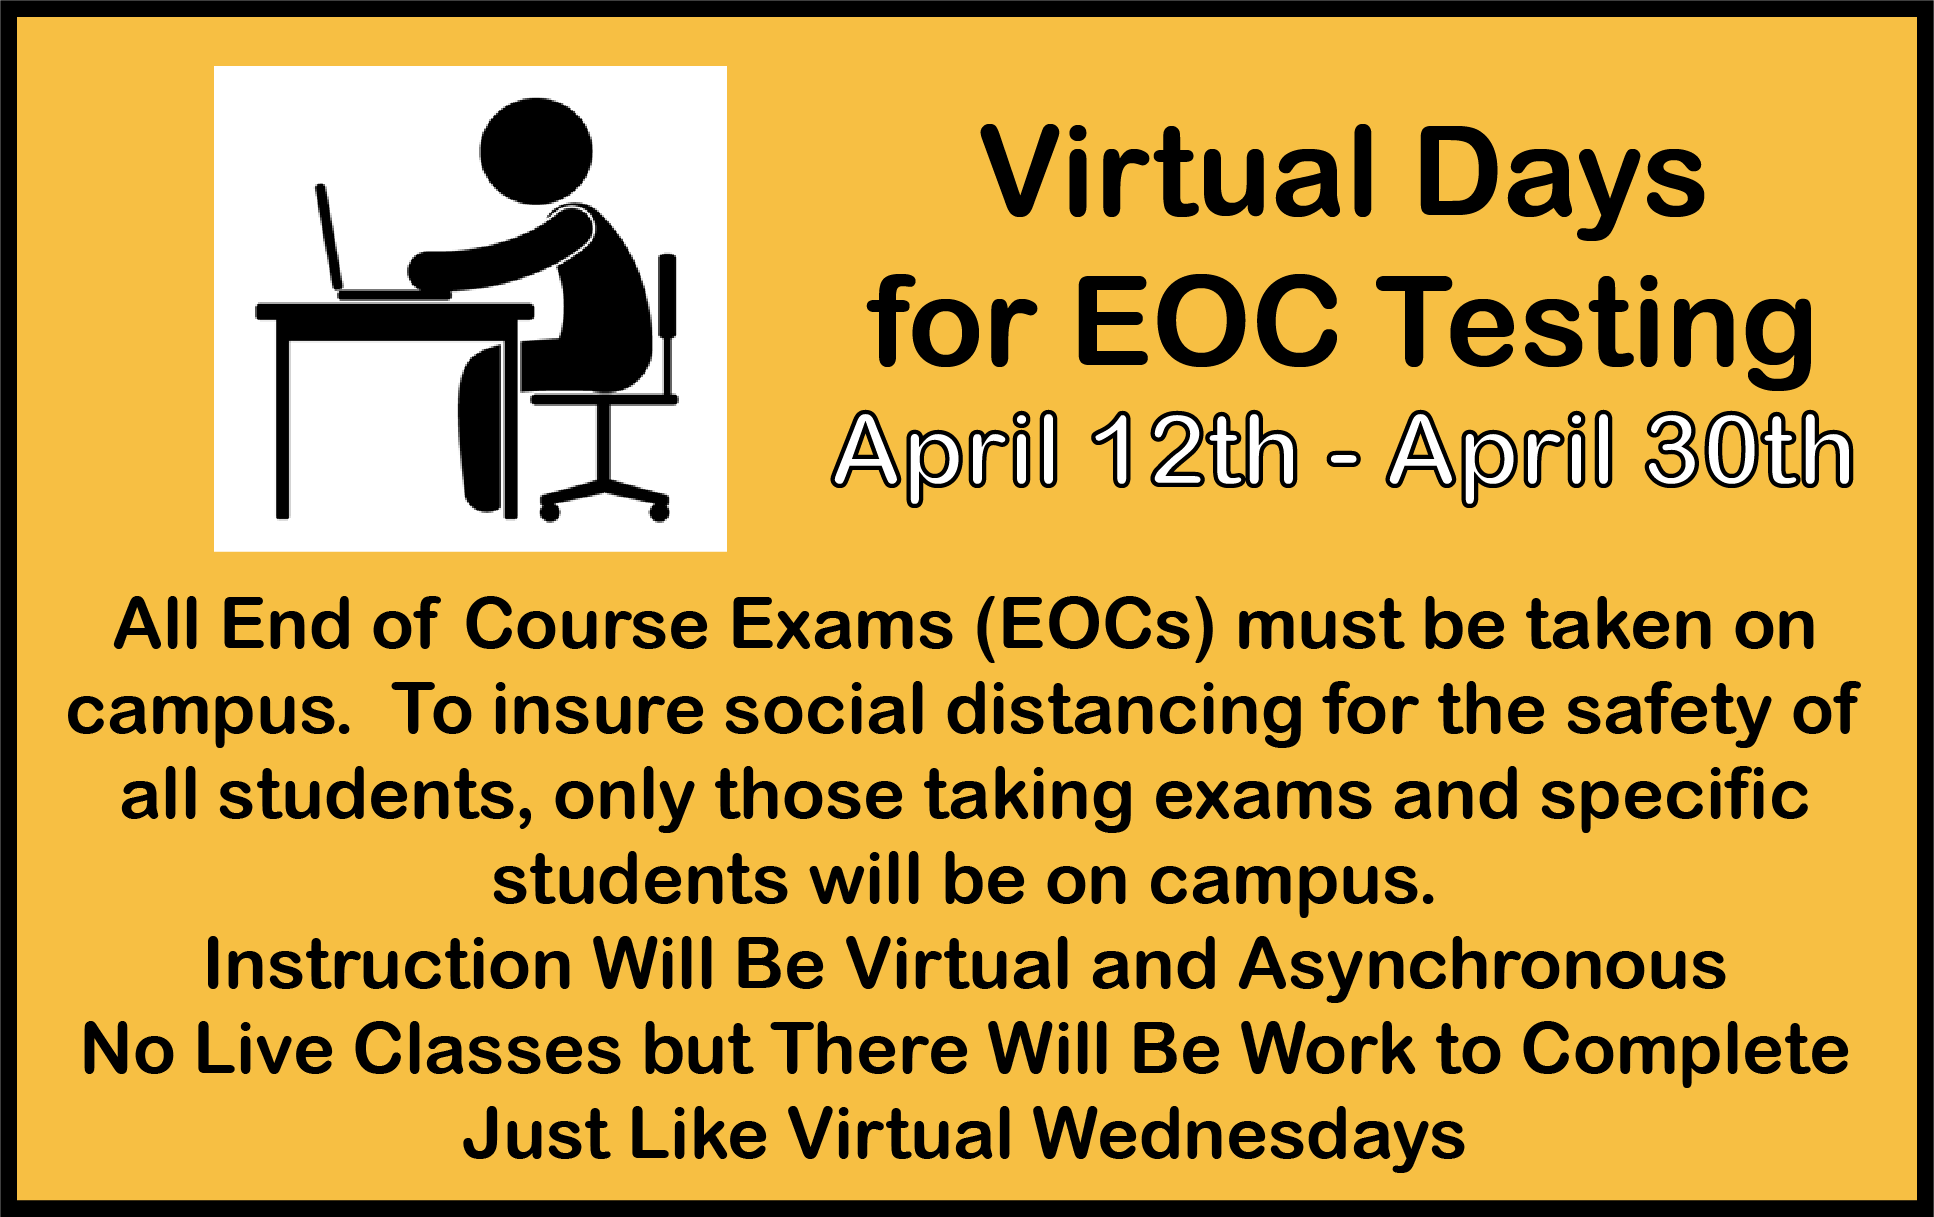 Remote Days during EOC Testing - April 12th through April 30th